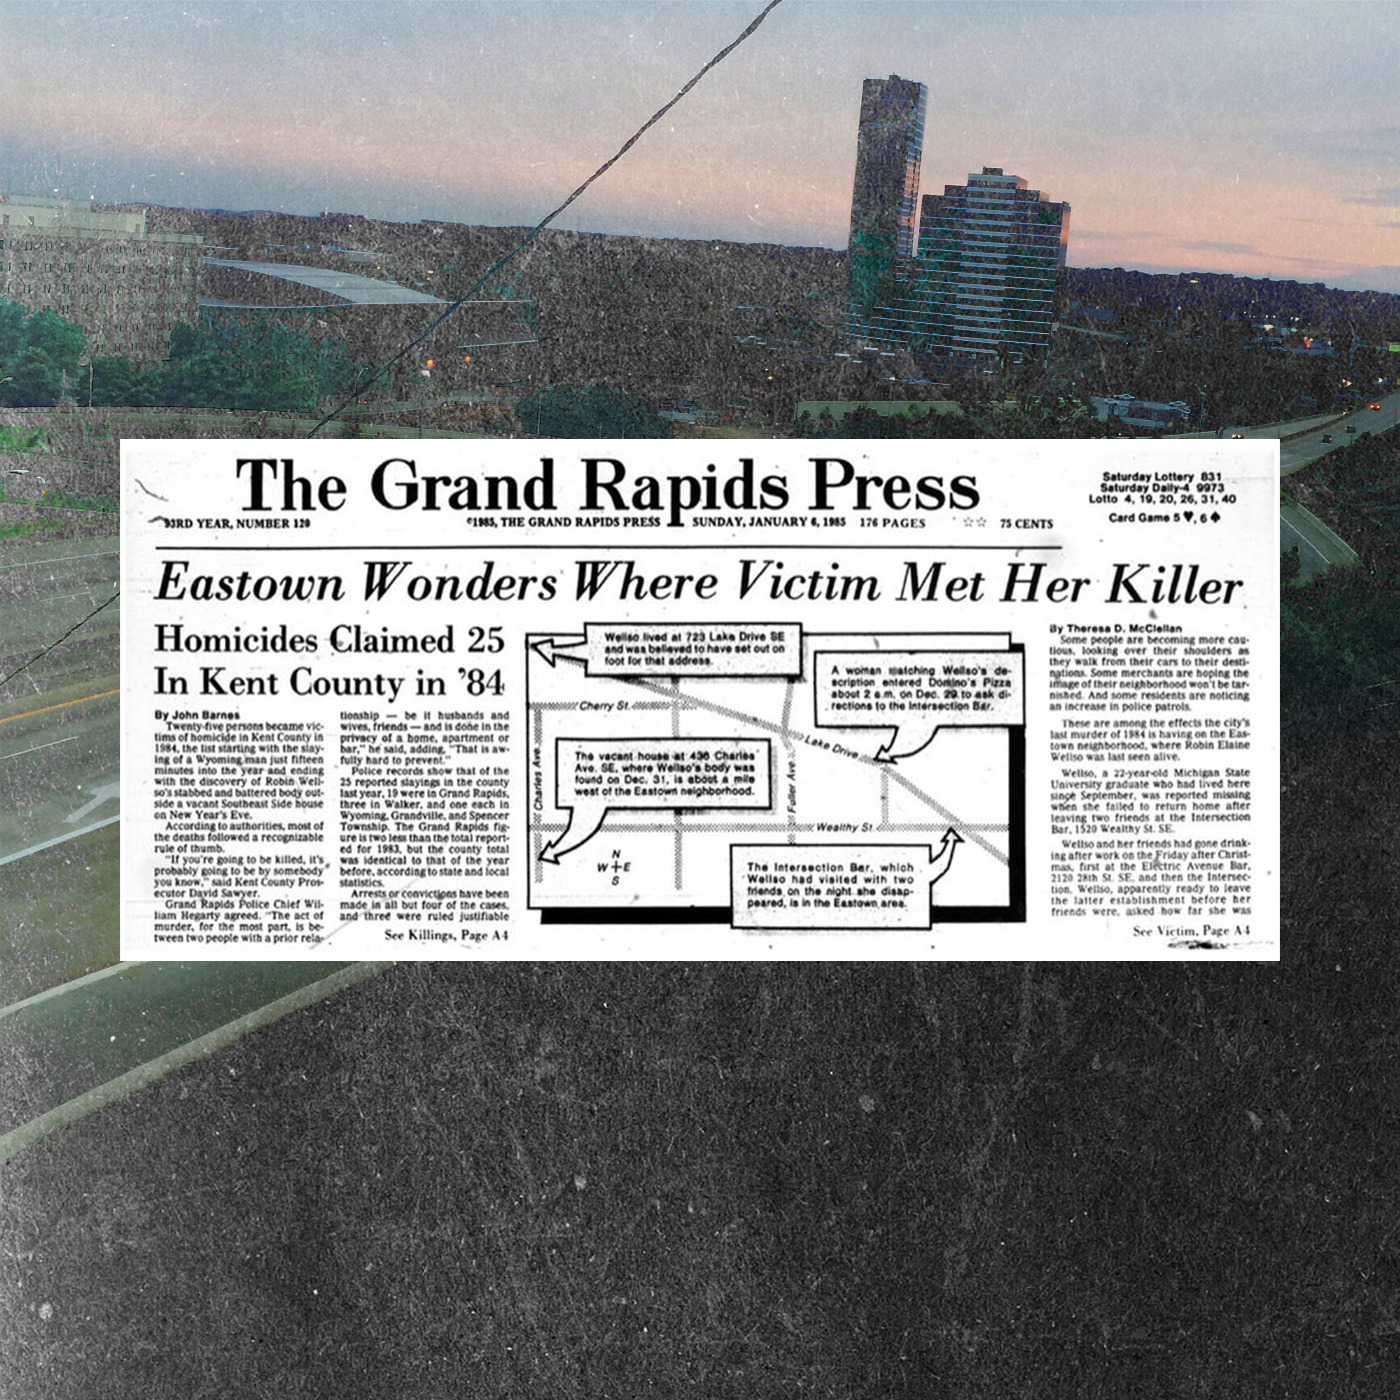 Grand Rapids Press newspaper clipping